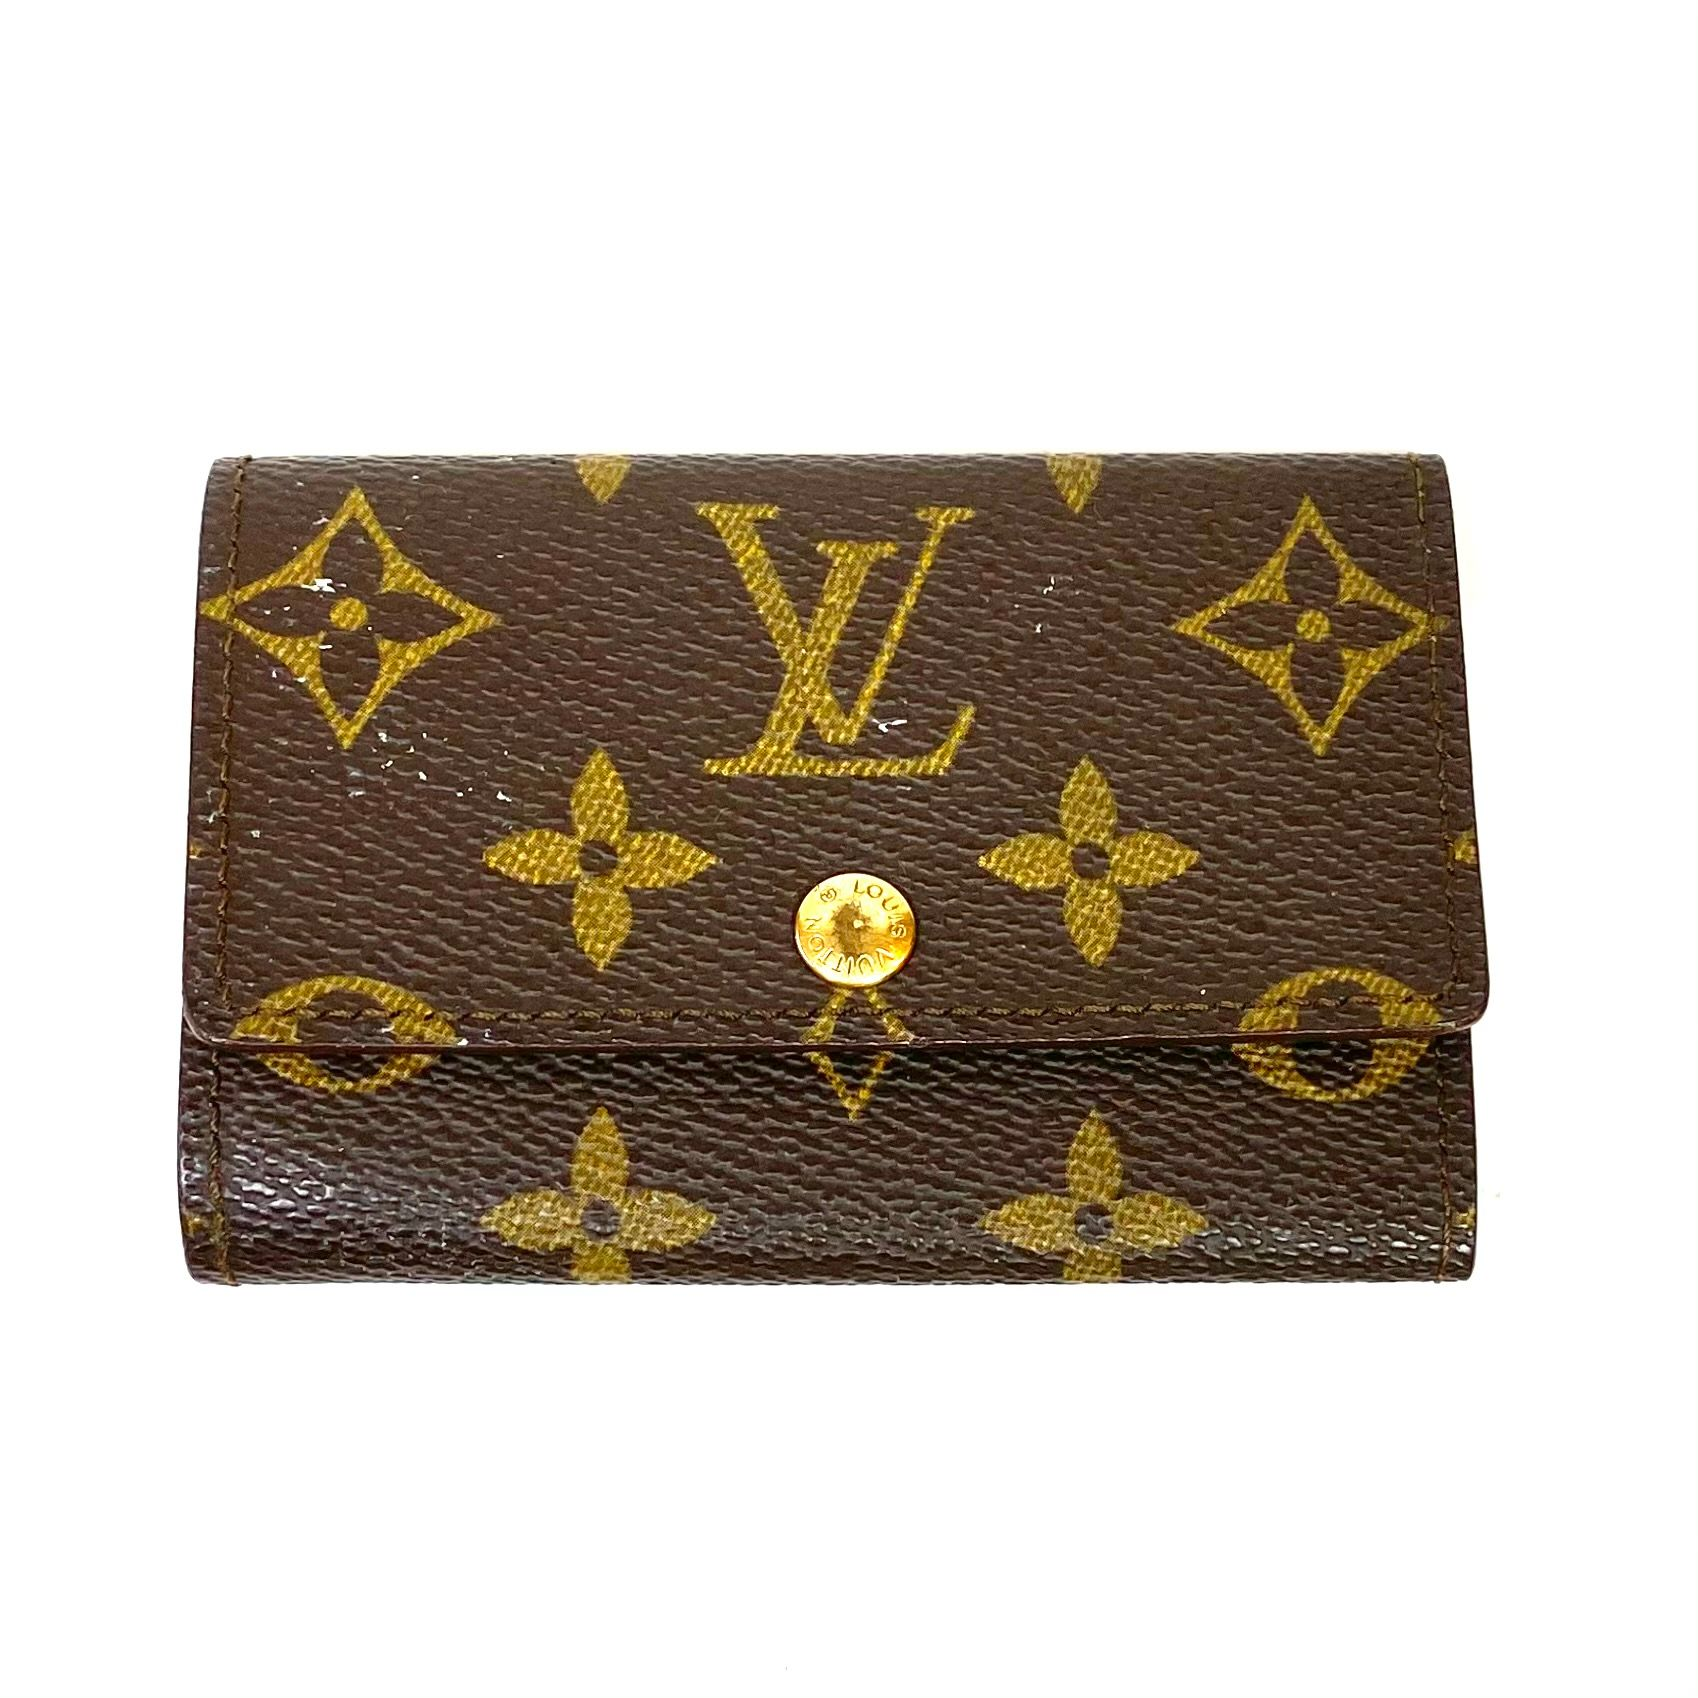 Porta Chaves Louis Vuitton Monograma